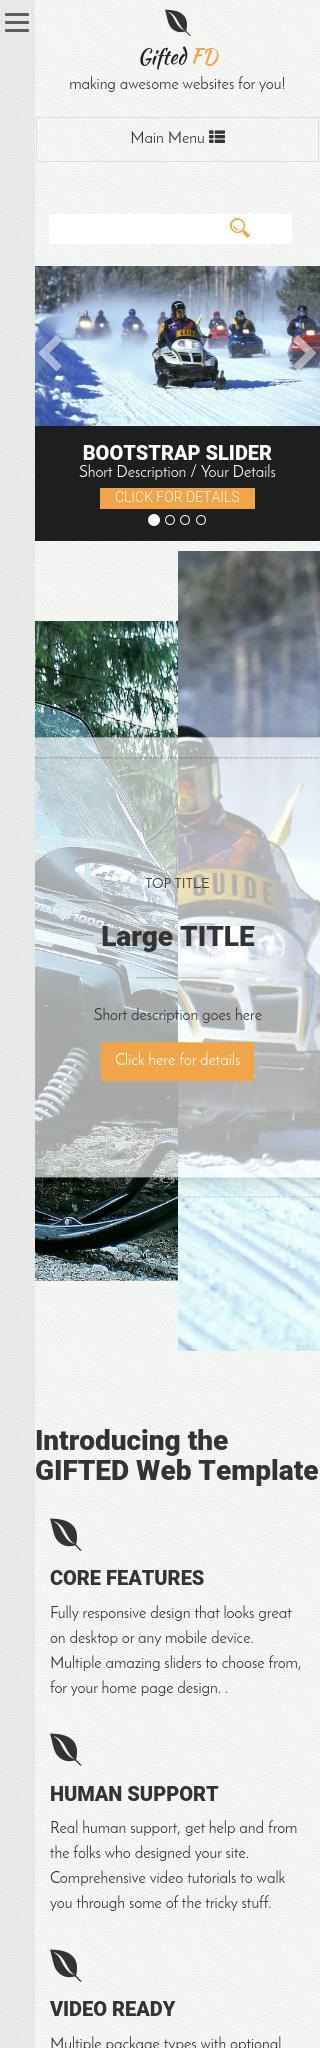 Mobile: Snowmobile Web Template